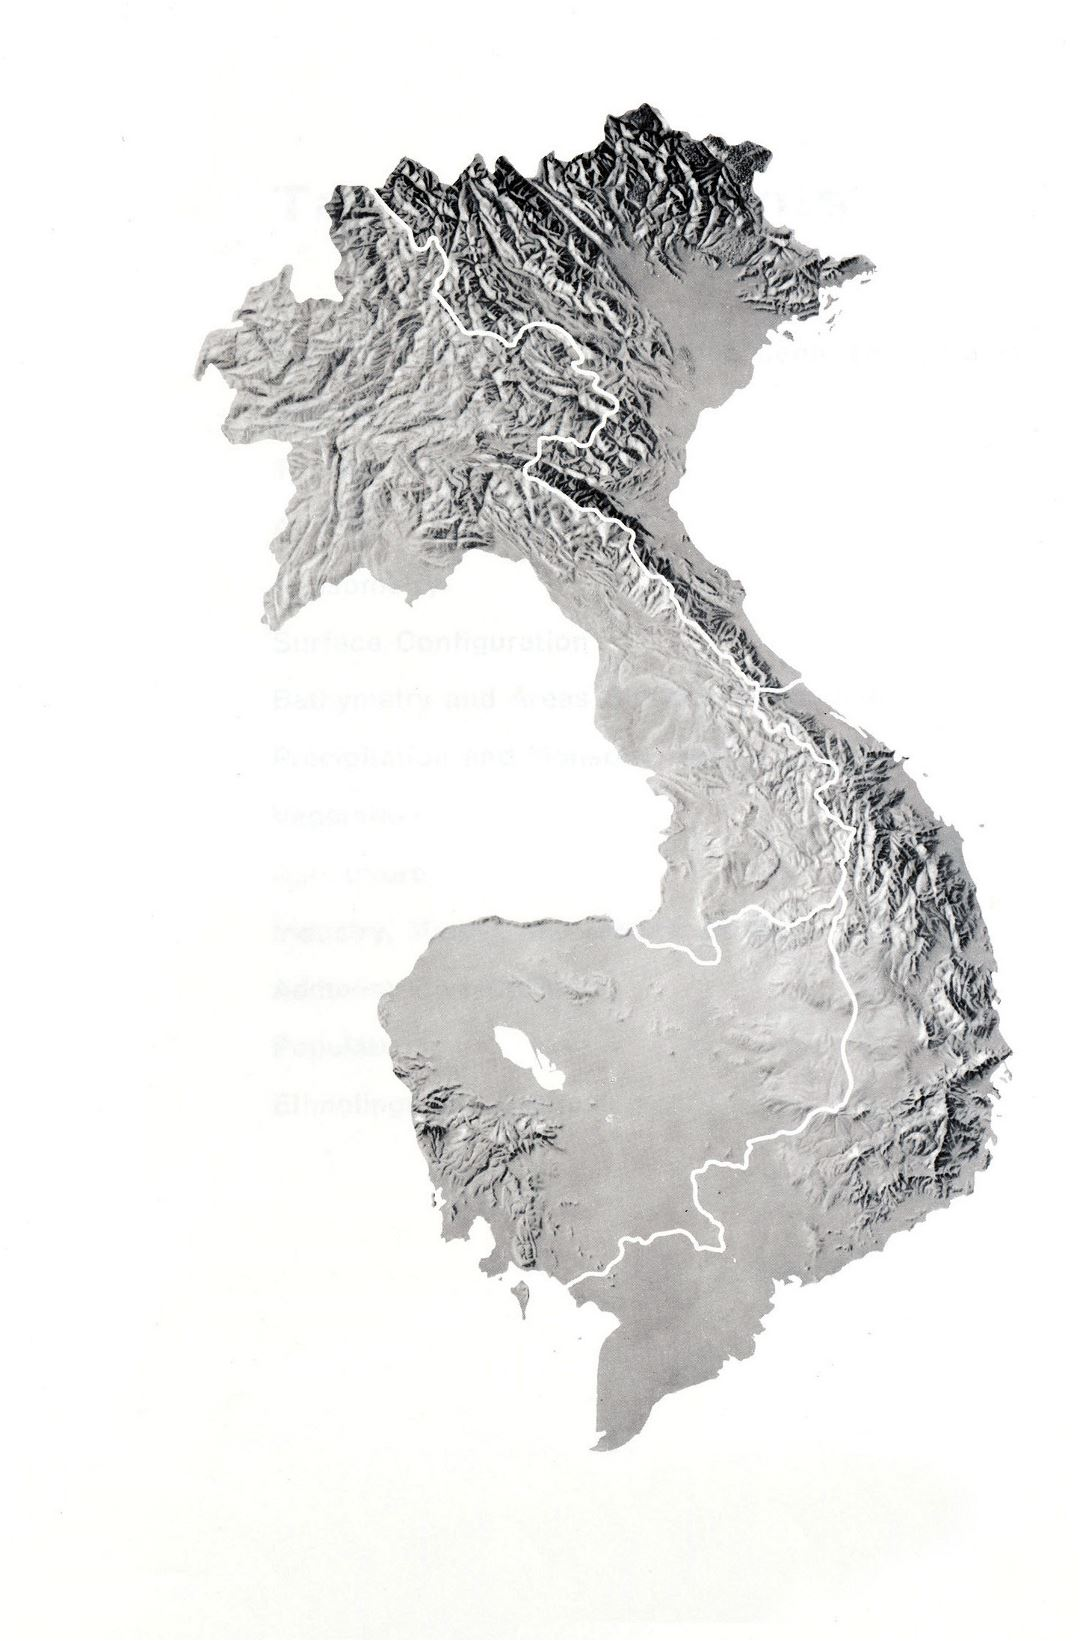 Large relief map of Indochina